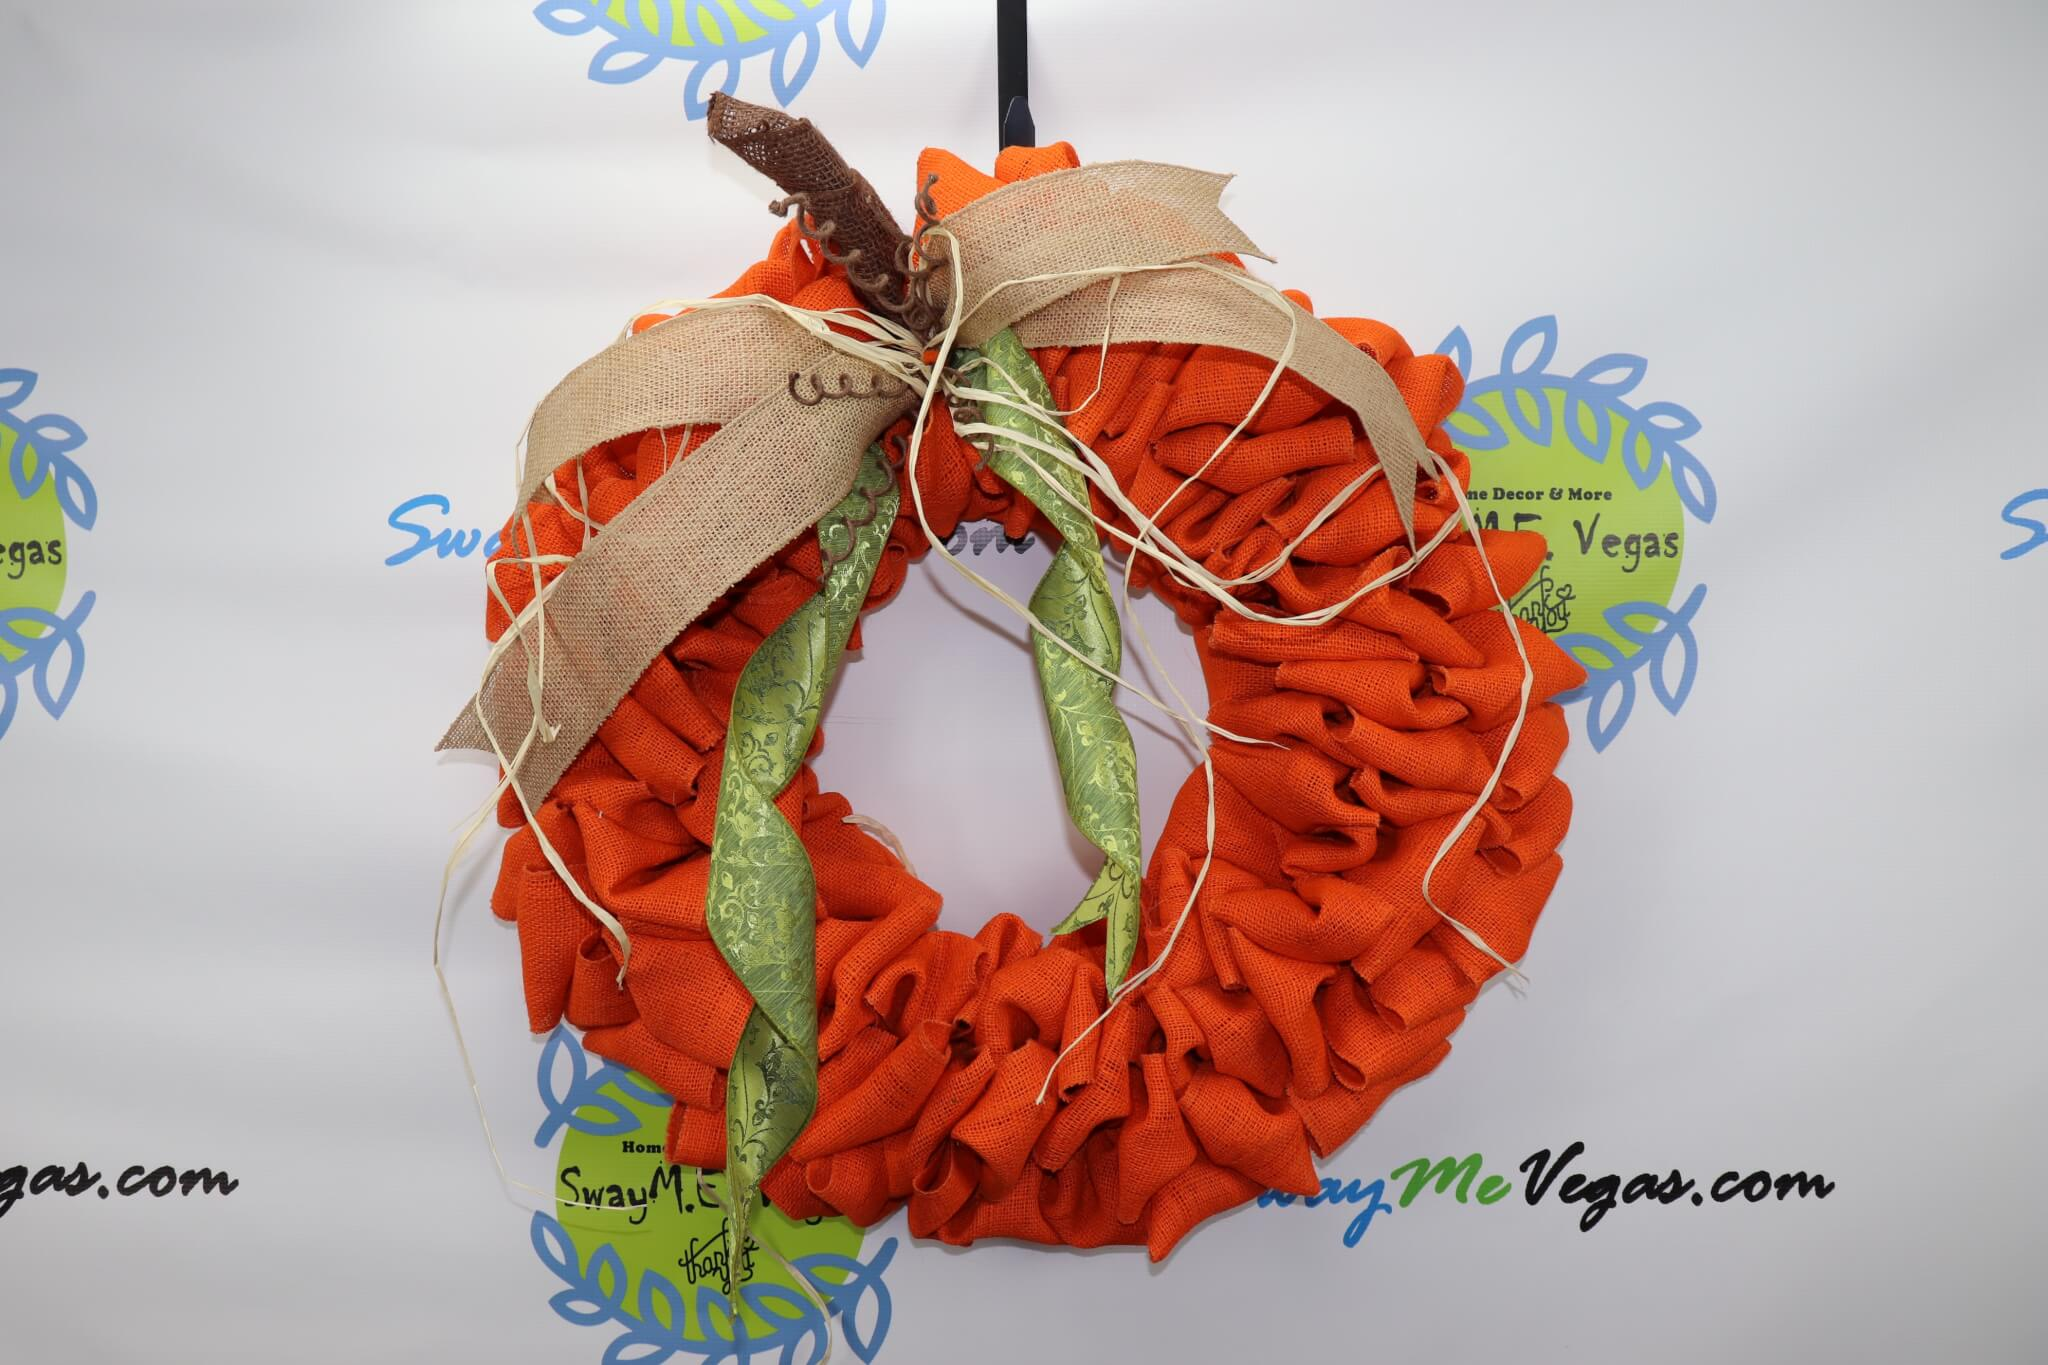 Fall-Pumpkin-Burlap-Wreath-1 Burlap Pumpkin Wreath